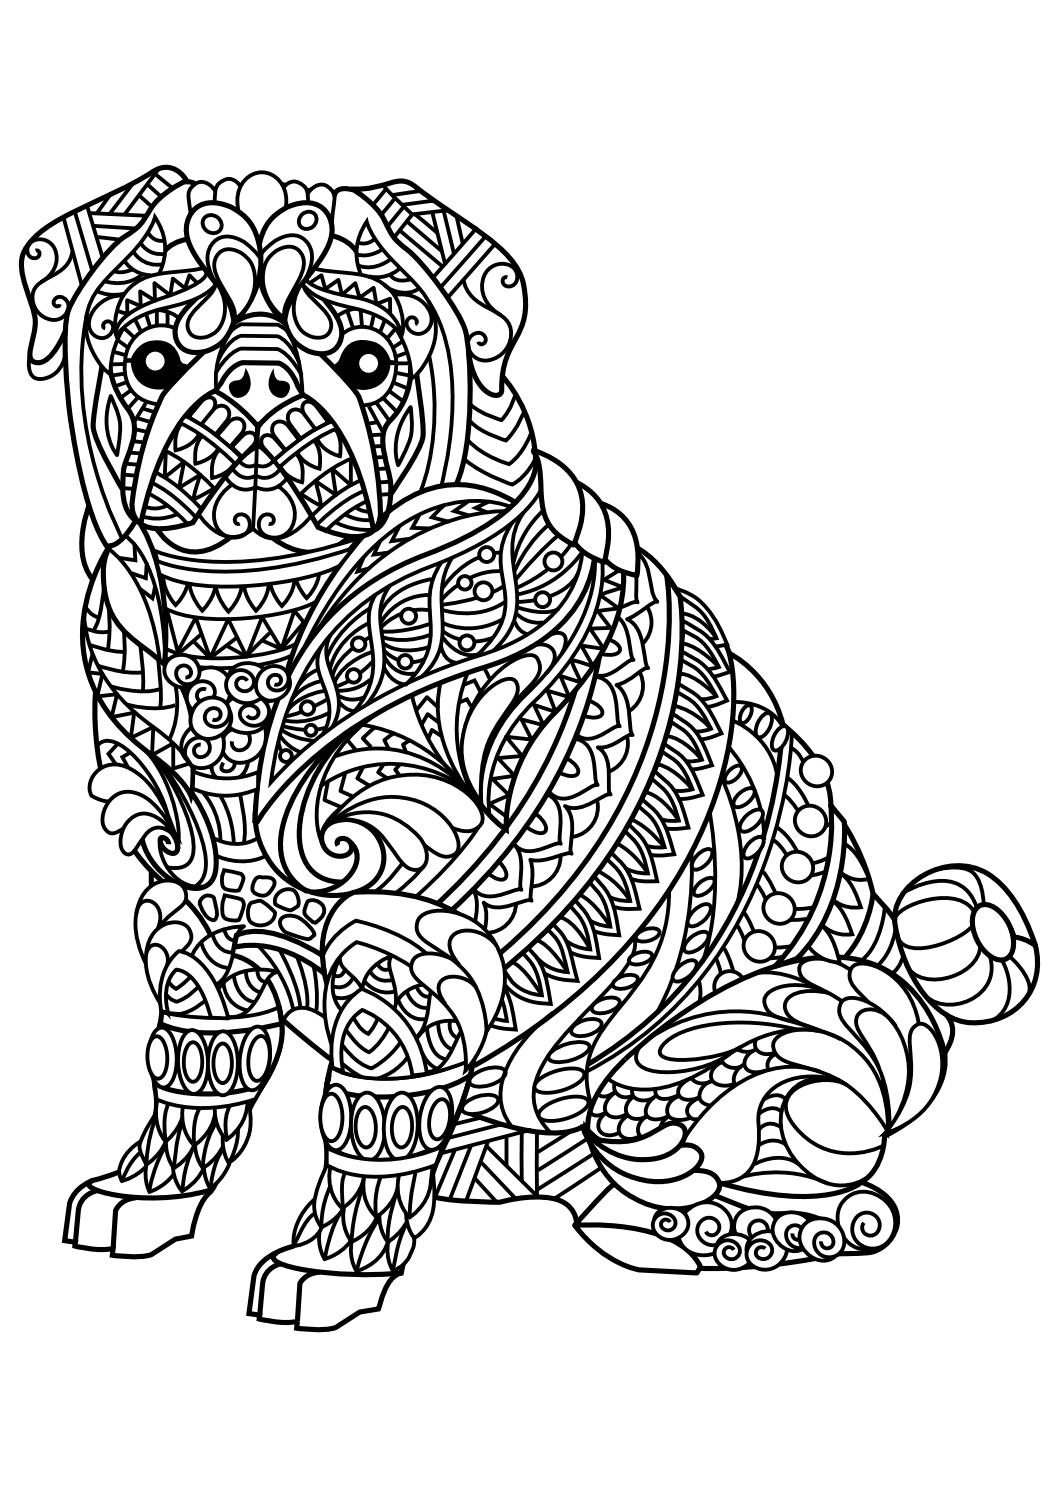 Wolf Printable Coloring Pages  Printable 17a - Save it to your computer